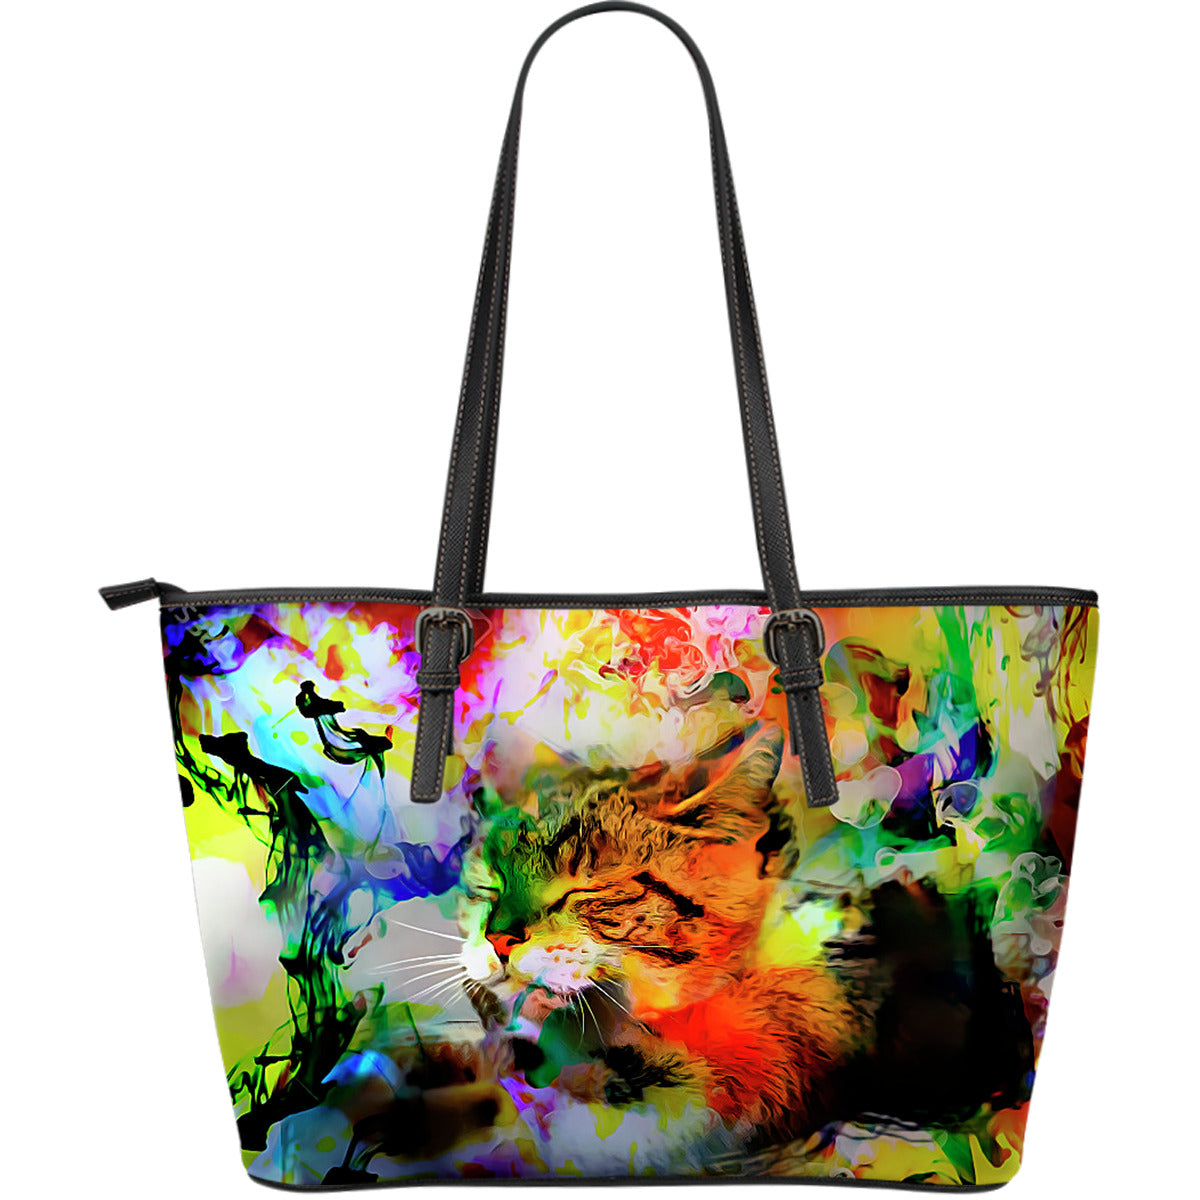 Sleeping Cat Large Leather Tote